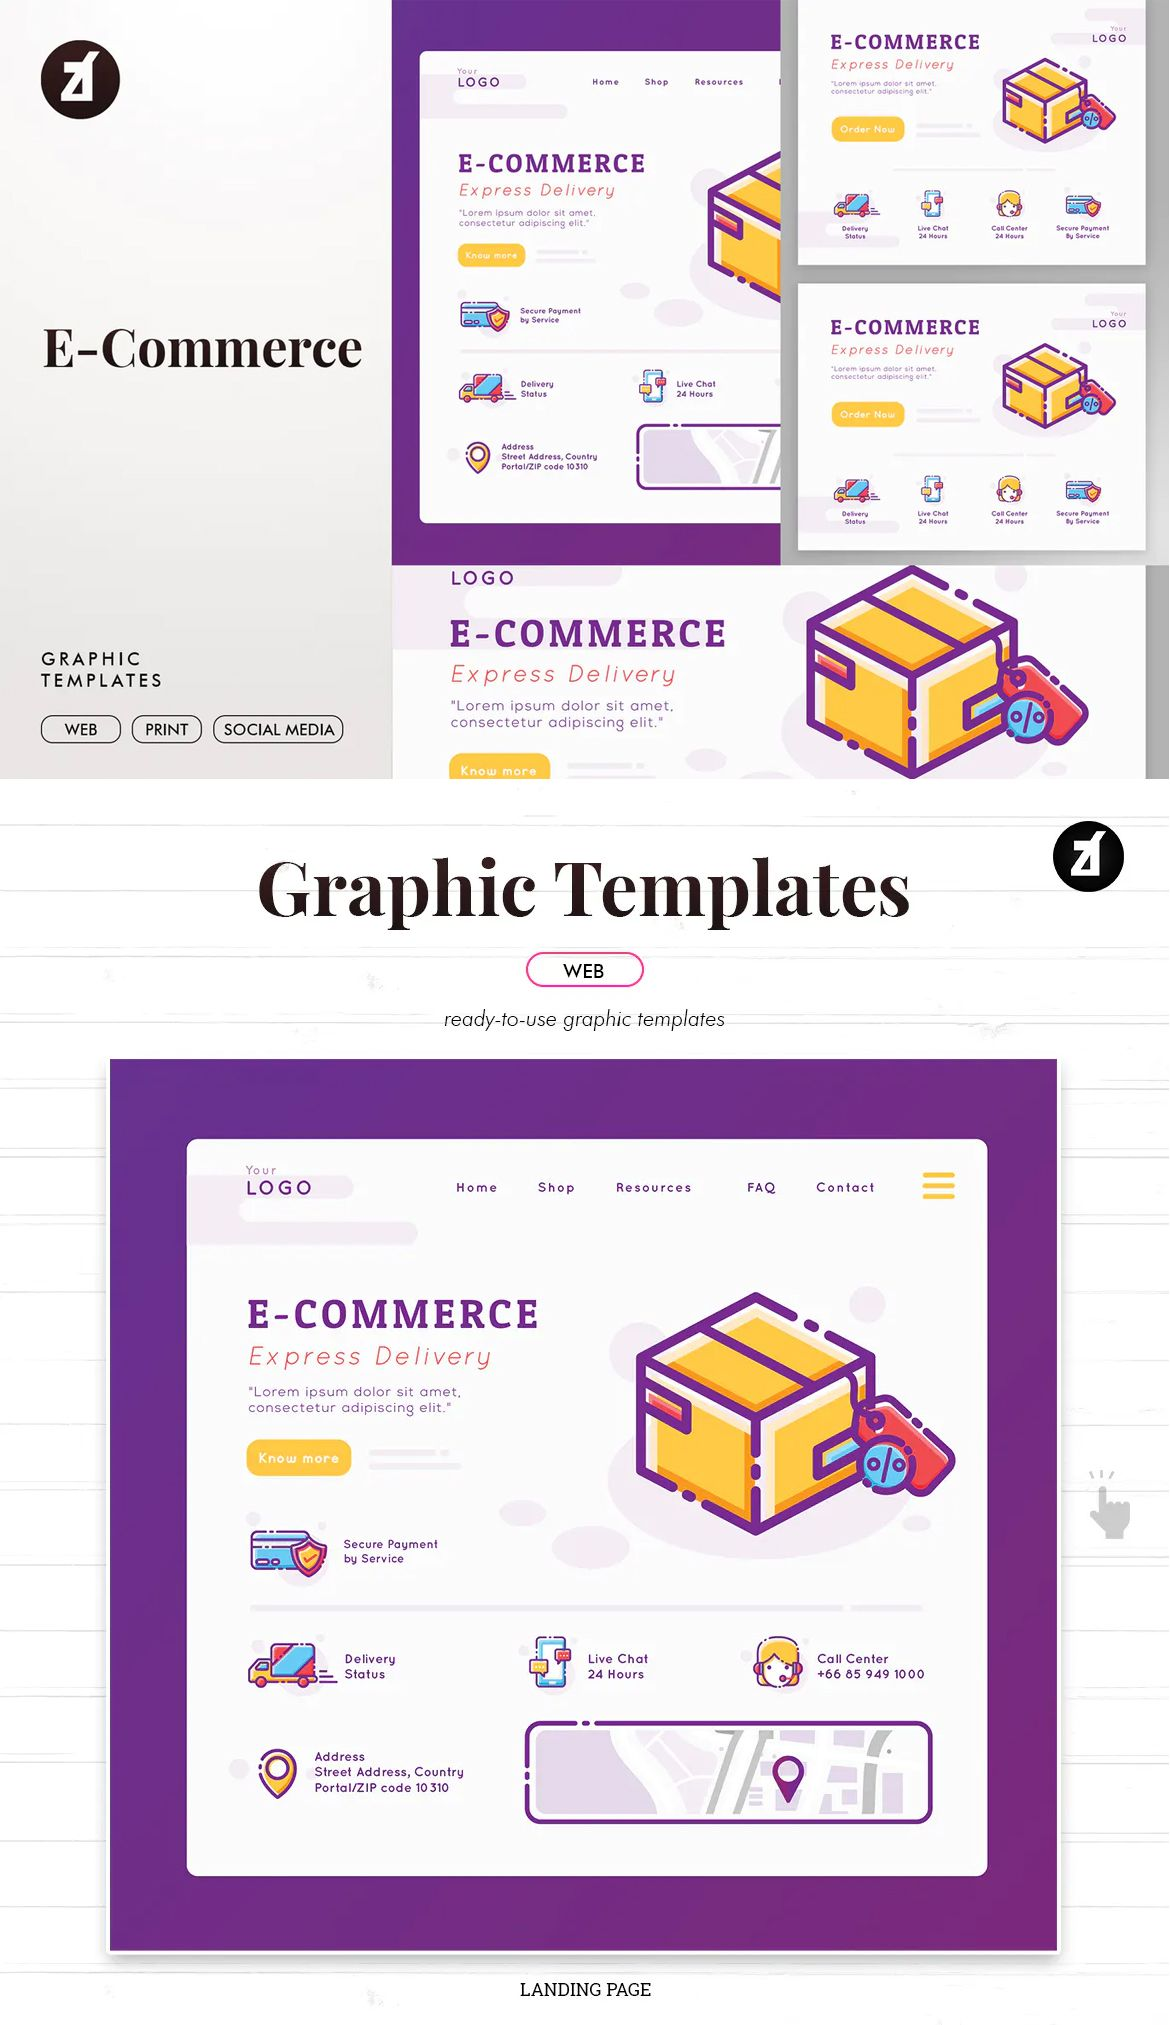 E-Commerce Graphic Templates and Landing Page Template AI, EPS